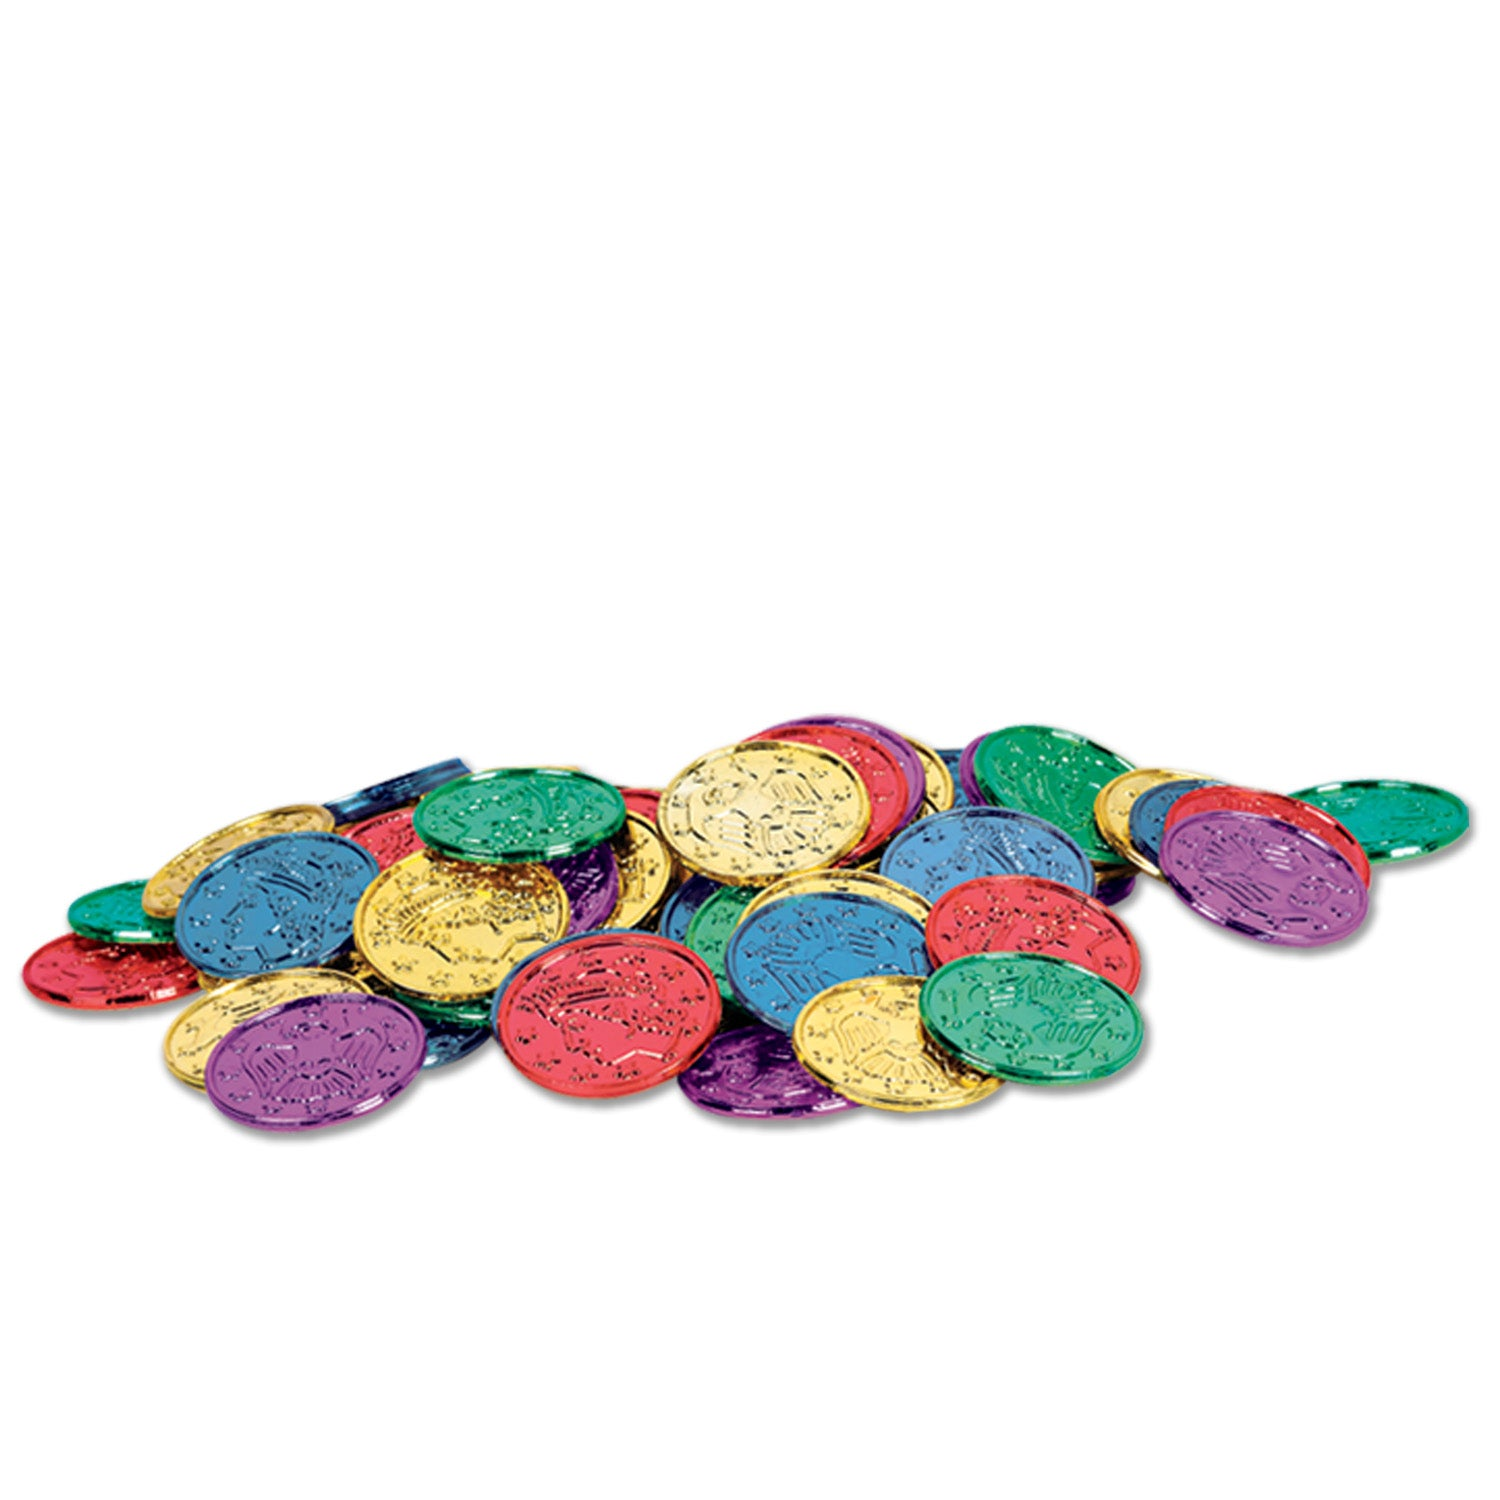 Plastic Coins (100/Pkg), asstd colors by Beistle - Pirate Theme Decorations